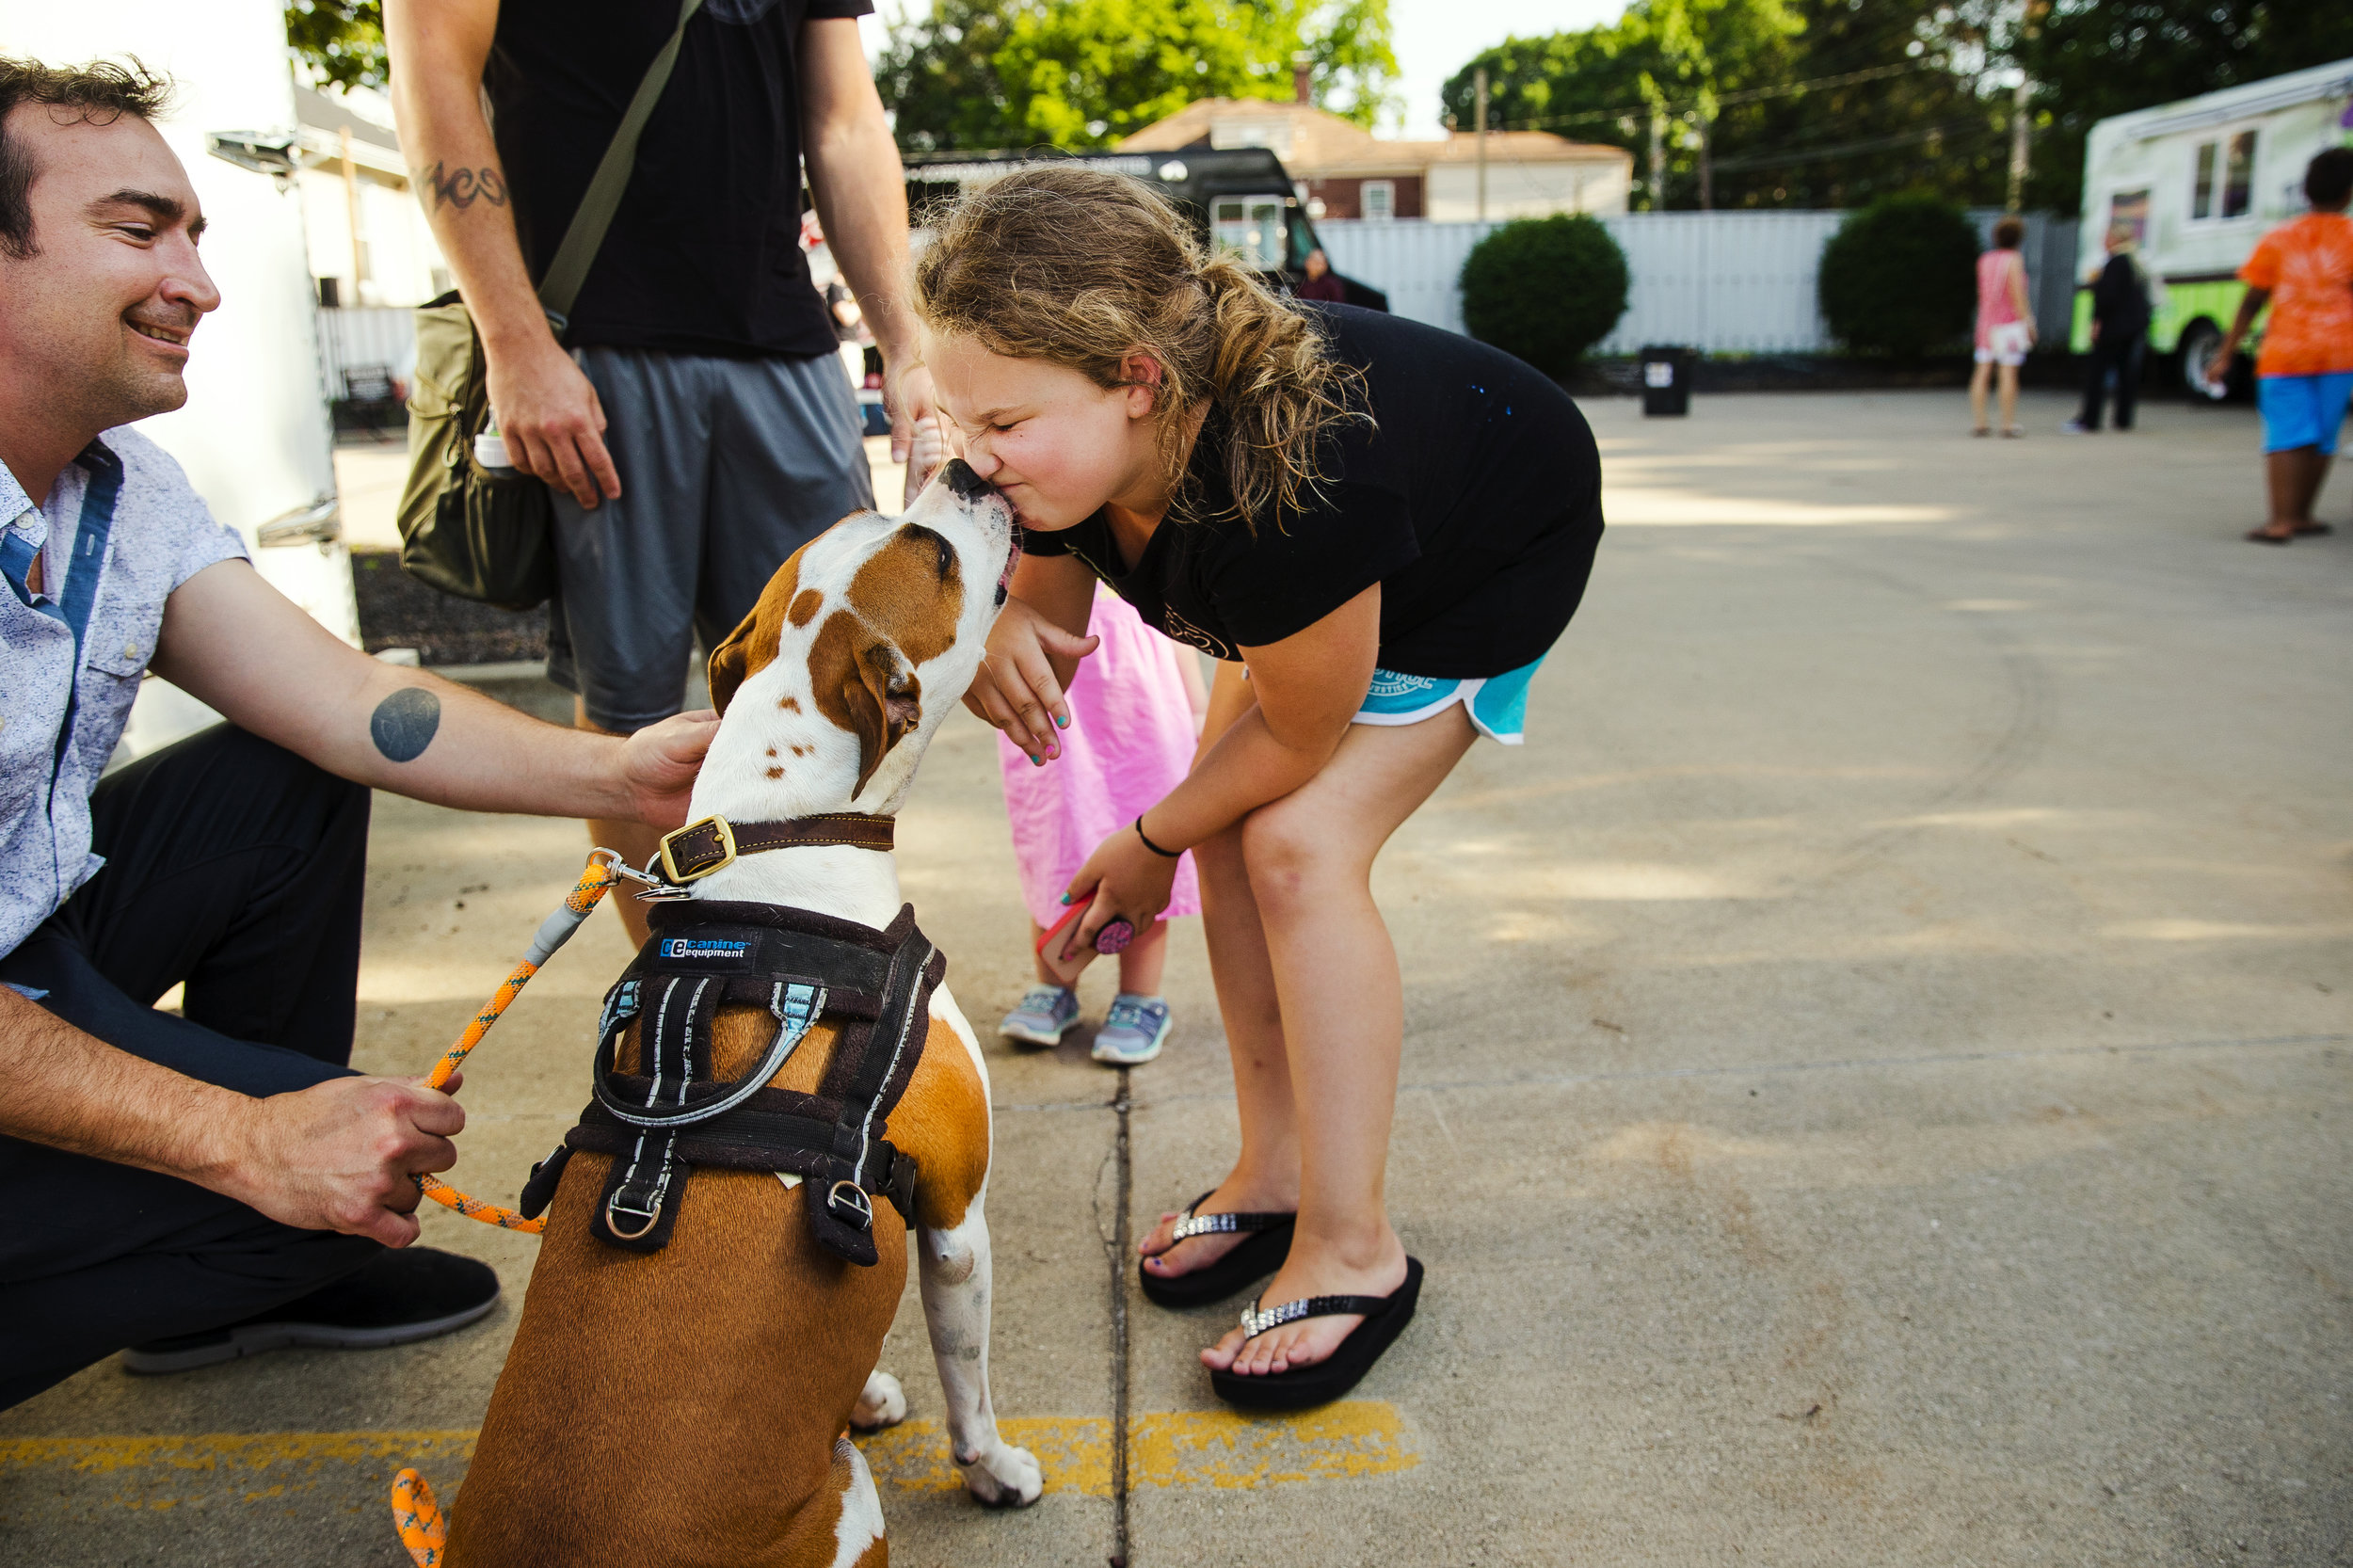 Craig Trudeau holds his dog Pasa as she greets Cadence White with a kiss near the Rolling Meadows Brewery tent at the MacArthur Boulevard Association's Bites on the Boulevard event Tuesday, July 12, 2018. Neighborhood schools are co-hosting the events as a fundraising opportunity for the programs serving the kids of the MacArthur Boulevard surrounding area. Events will continue July 10, August 7, and September 11 from 5:00 p.m. to 9:00 p.m. at 1413 S MacArthur Boulevard. [Ted Schurter/The State Journal-Register]